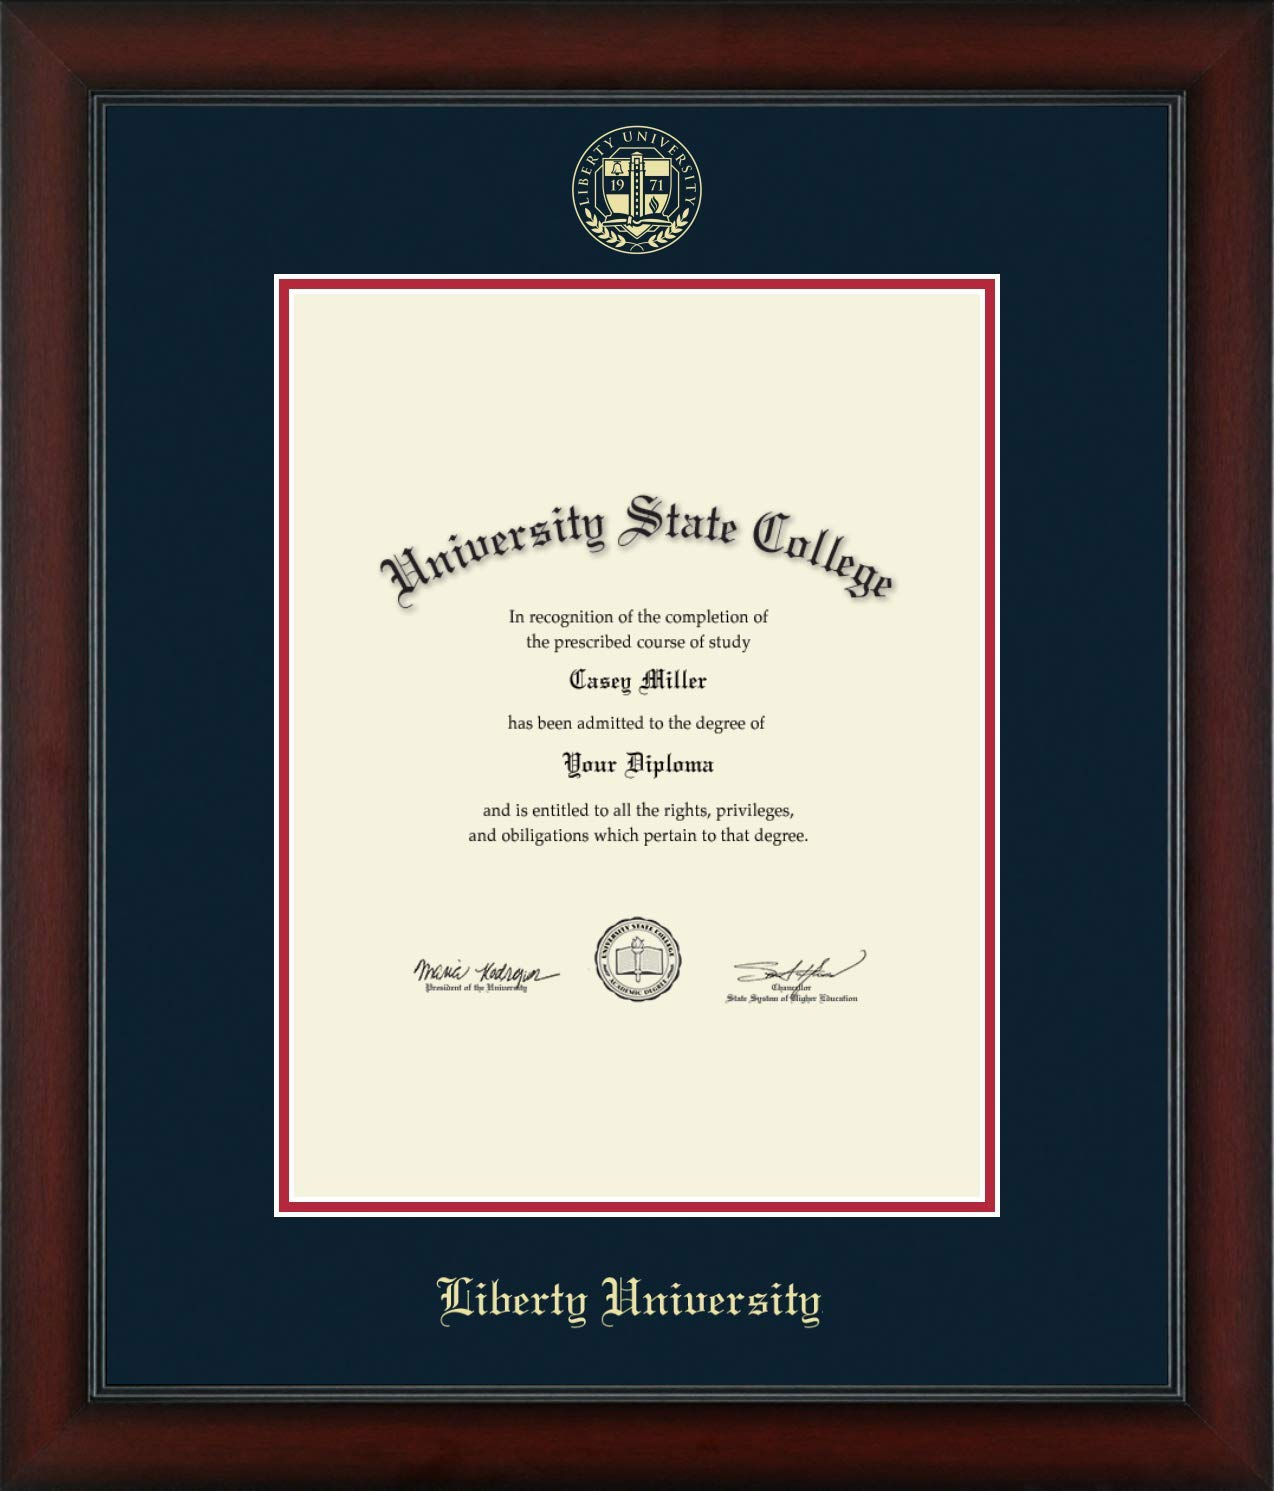 Liberty University - Officially Licensed - Masters/PhD- Gold Embossed Diploma Frame - Diploma Size 13'' x 17''